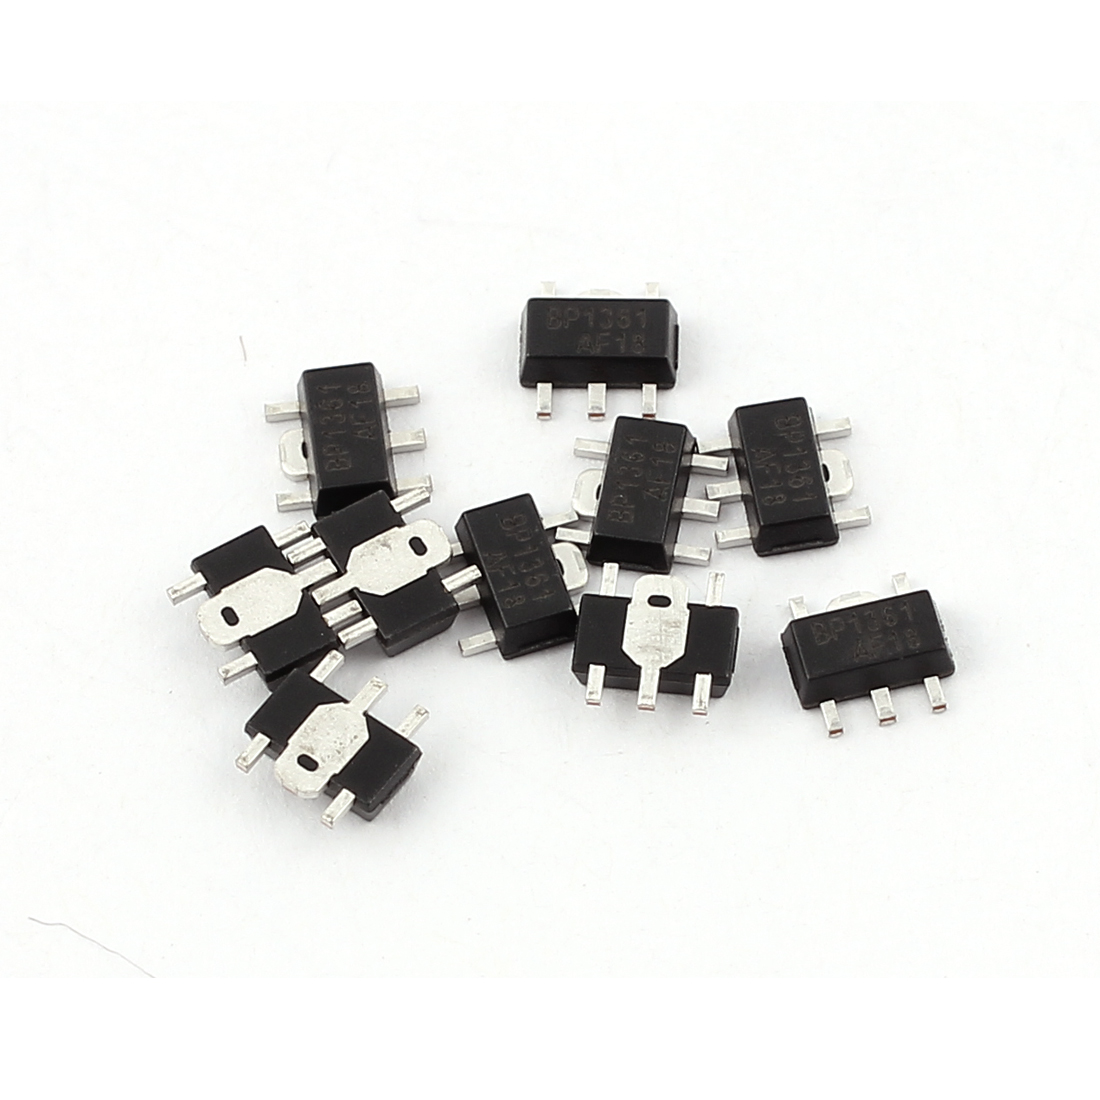 10Pcs BP1361 SOP-5 SMD SMT Type PCB Surface Mount LED Driver Circuit Module Integrated Circuit IC Chip